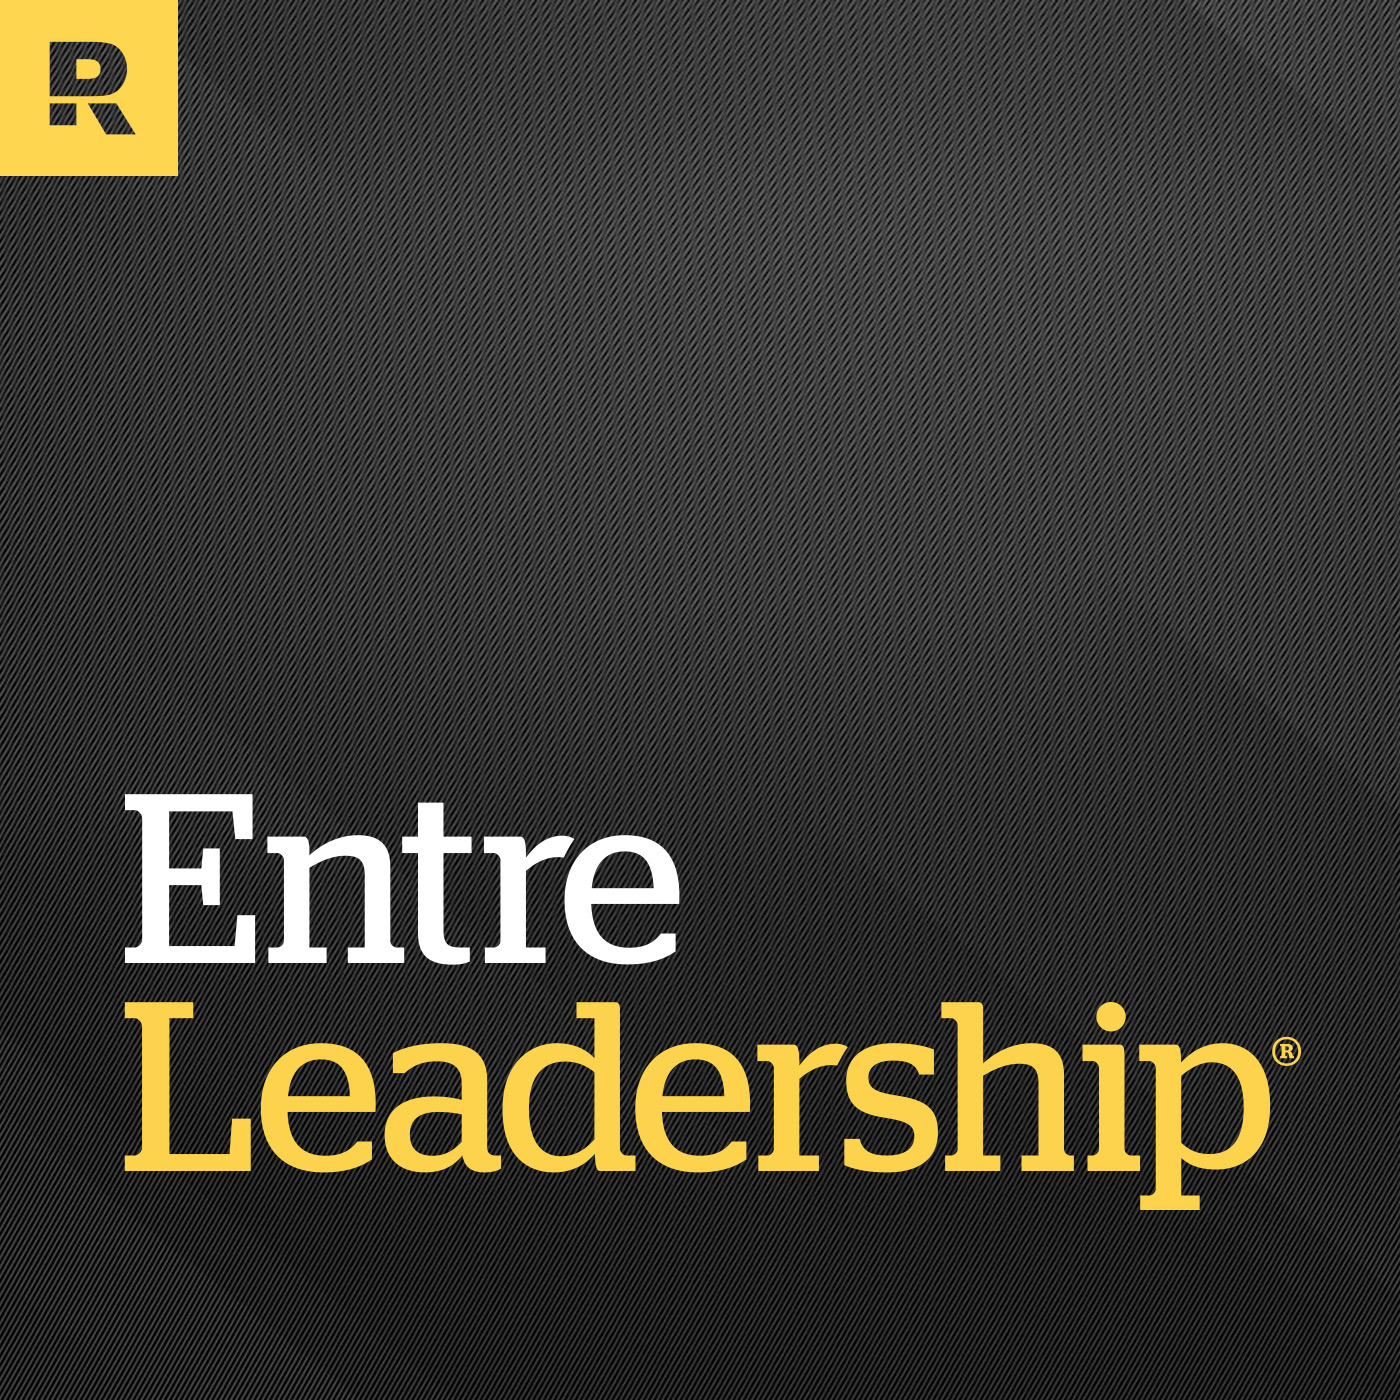 EntreLeadership podcast cover